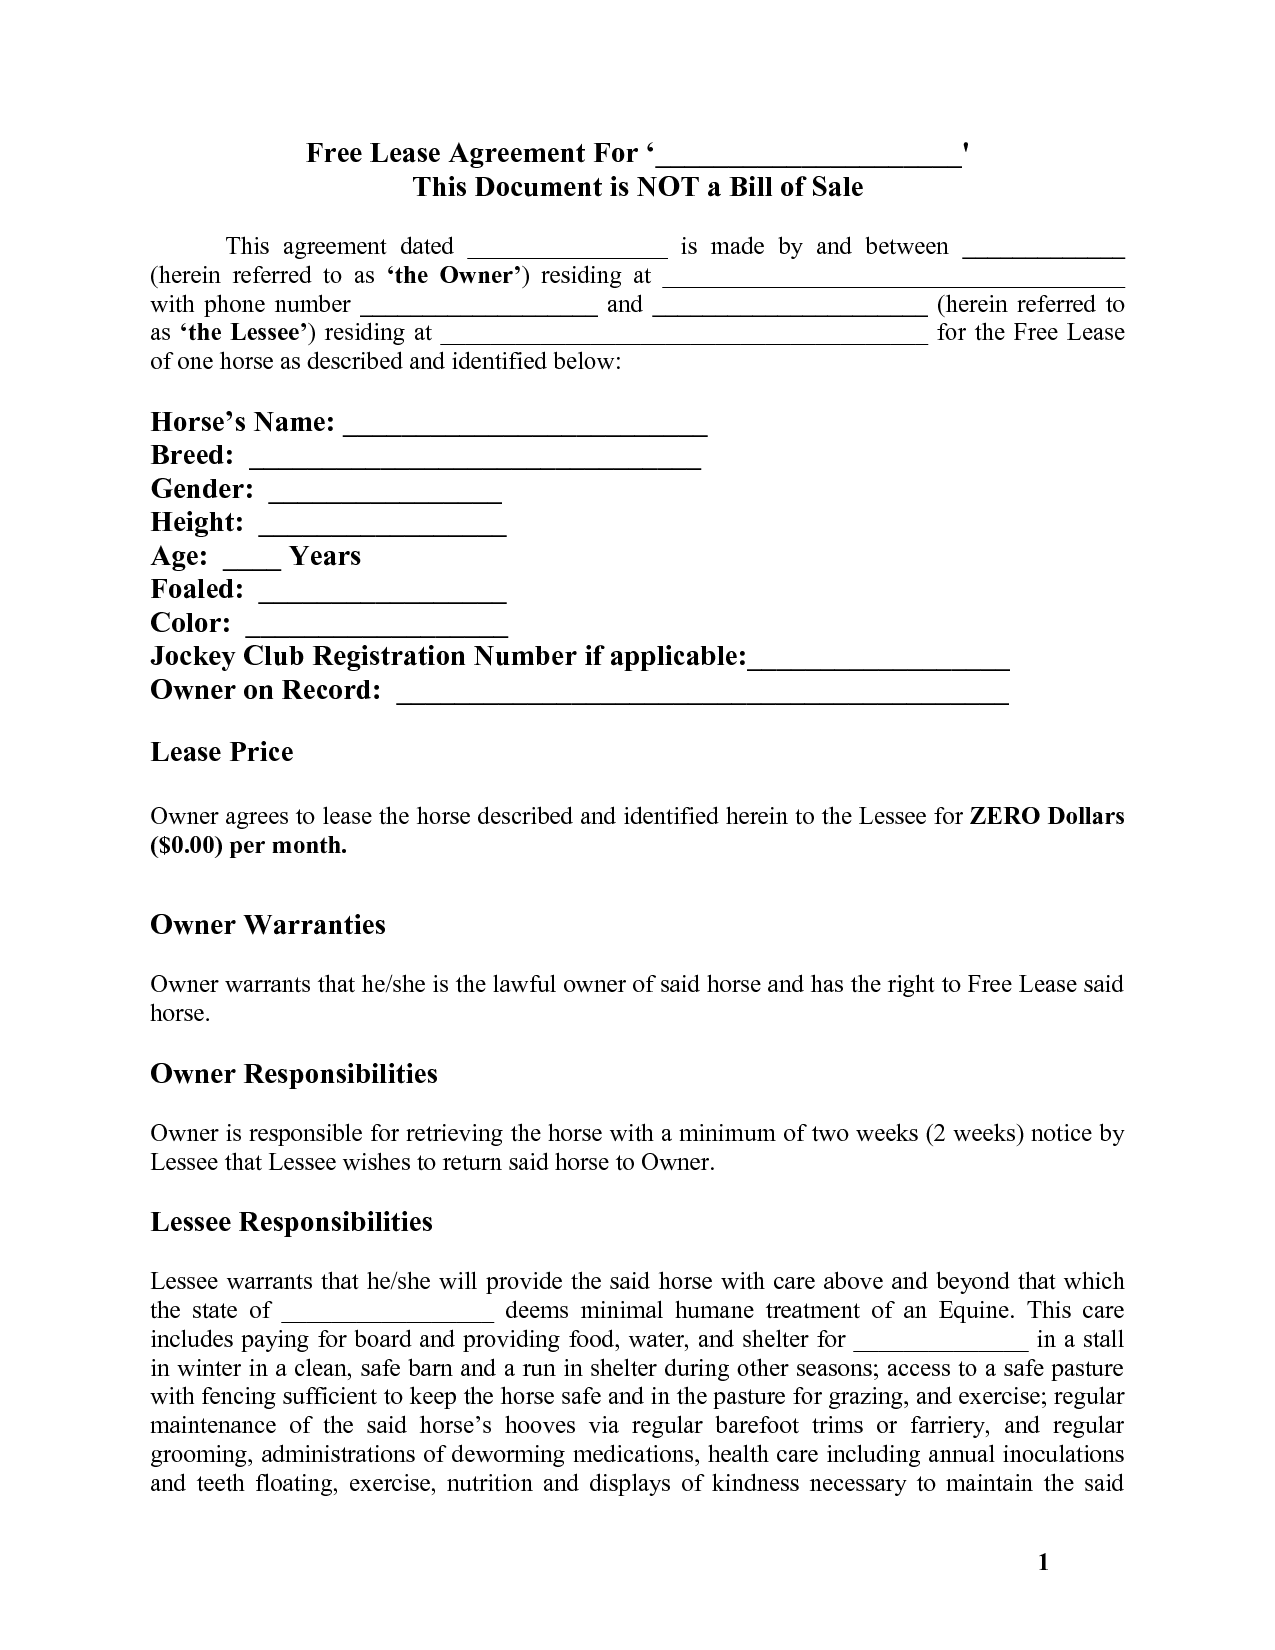 Equine Lease Agreement Fill Online, Printable, Fillable, Blank